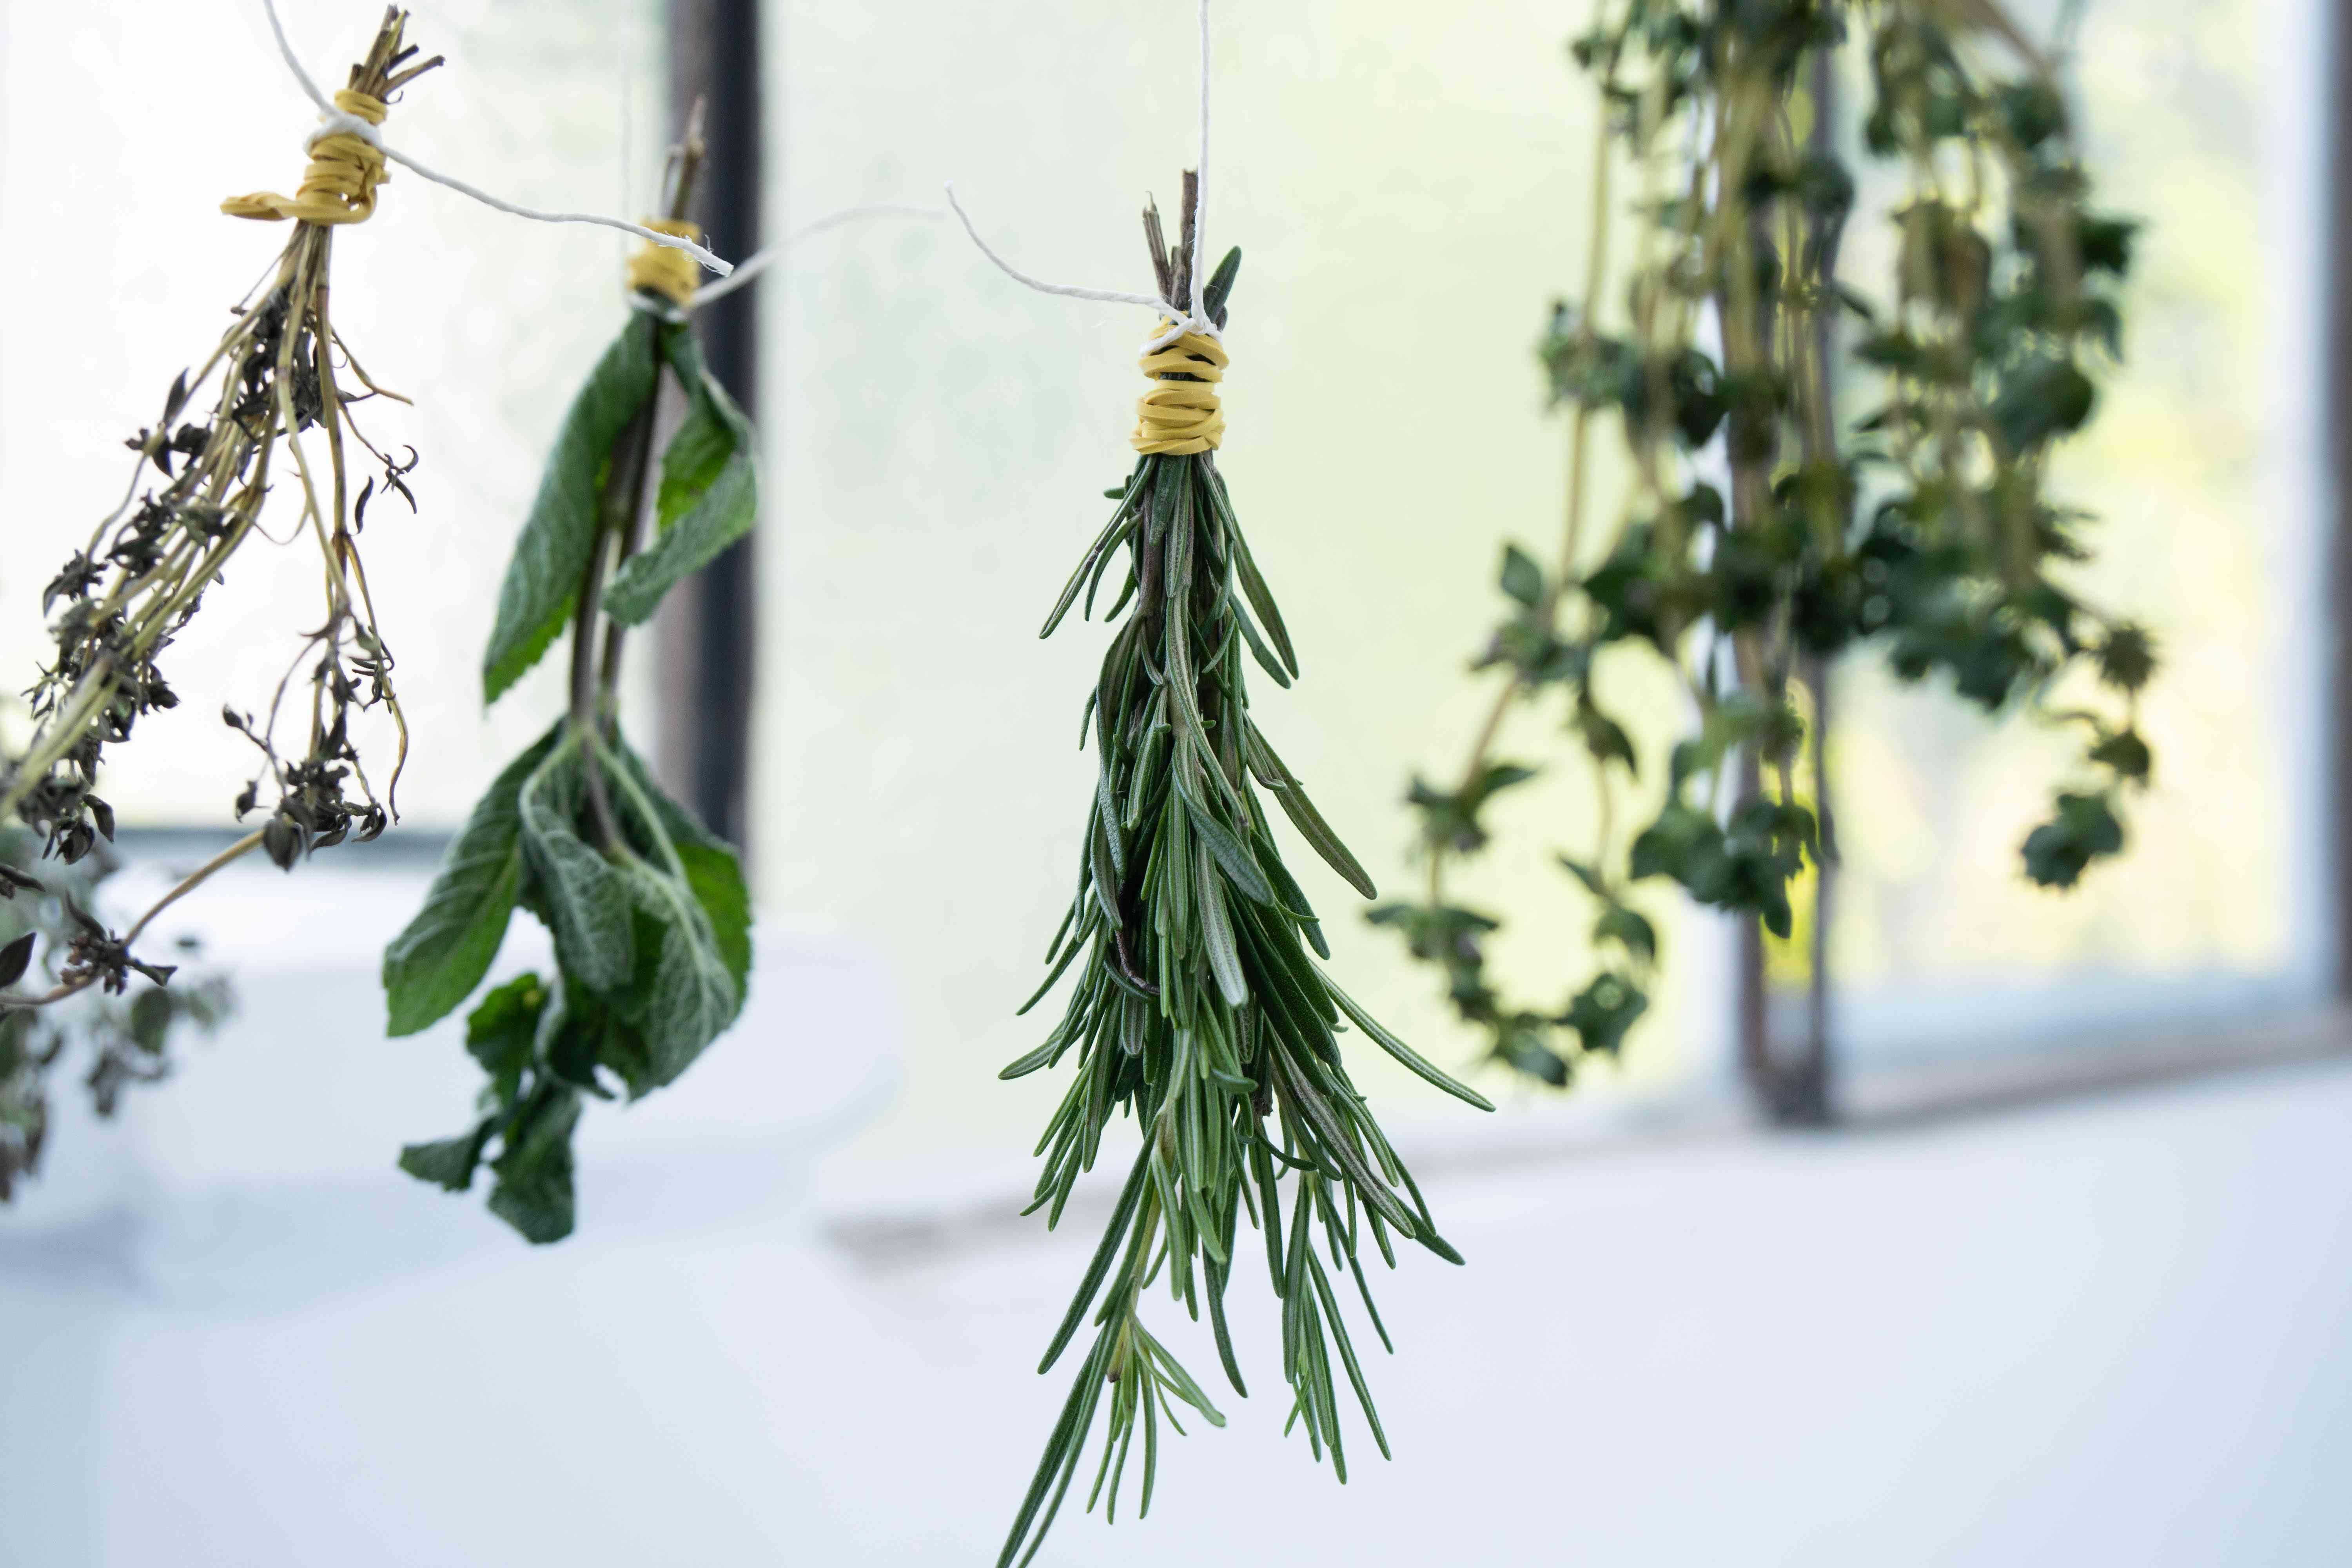 various herbs tied with twine and being dried by air by hanging